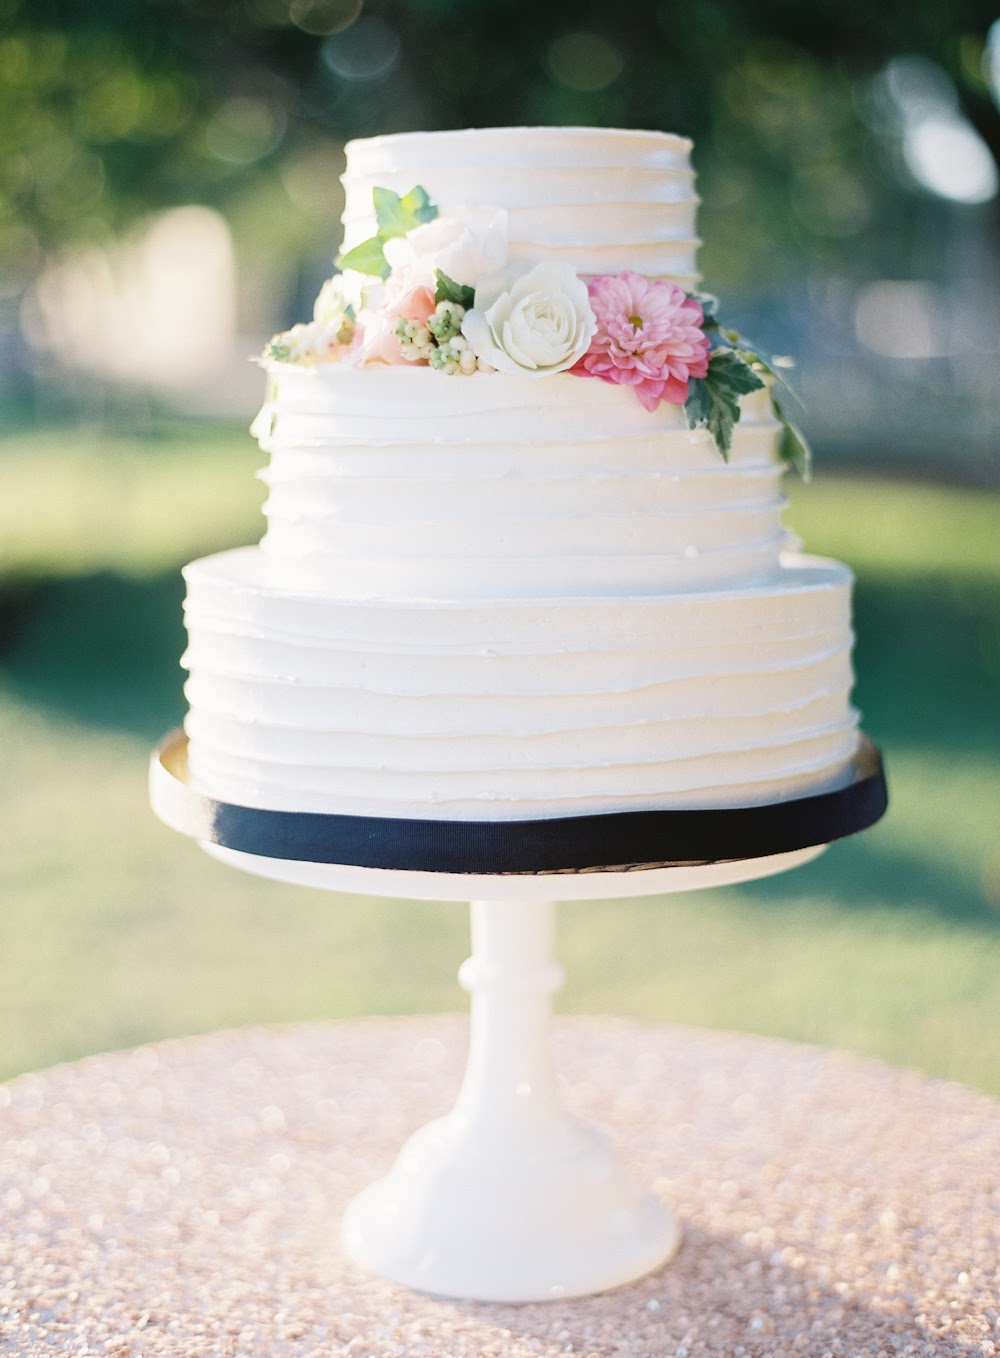 buttercream-wedding-cakes02.jpg